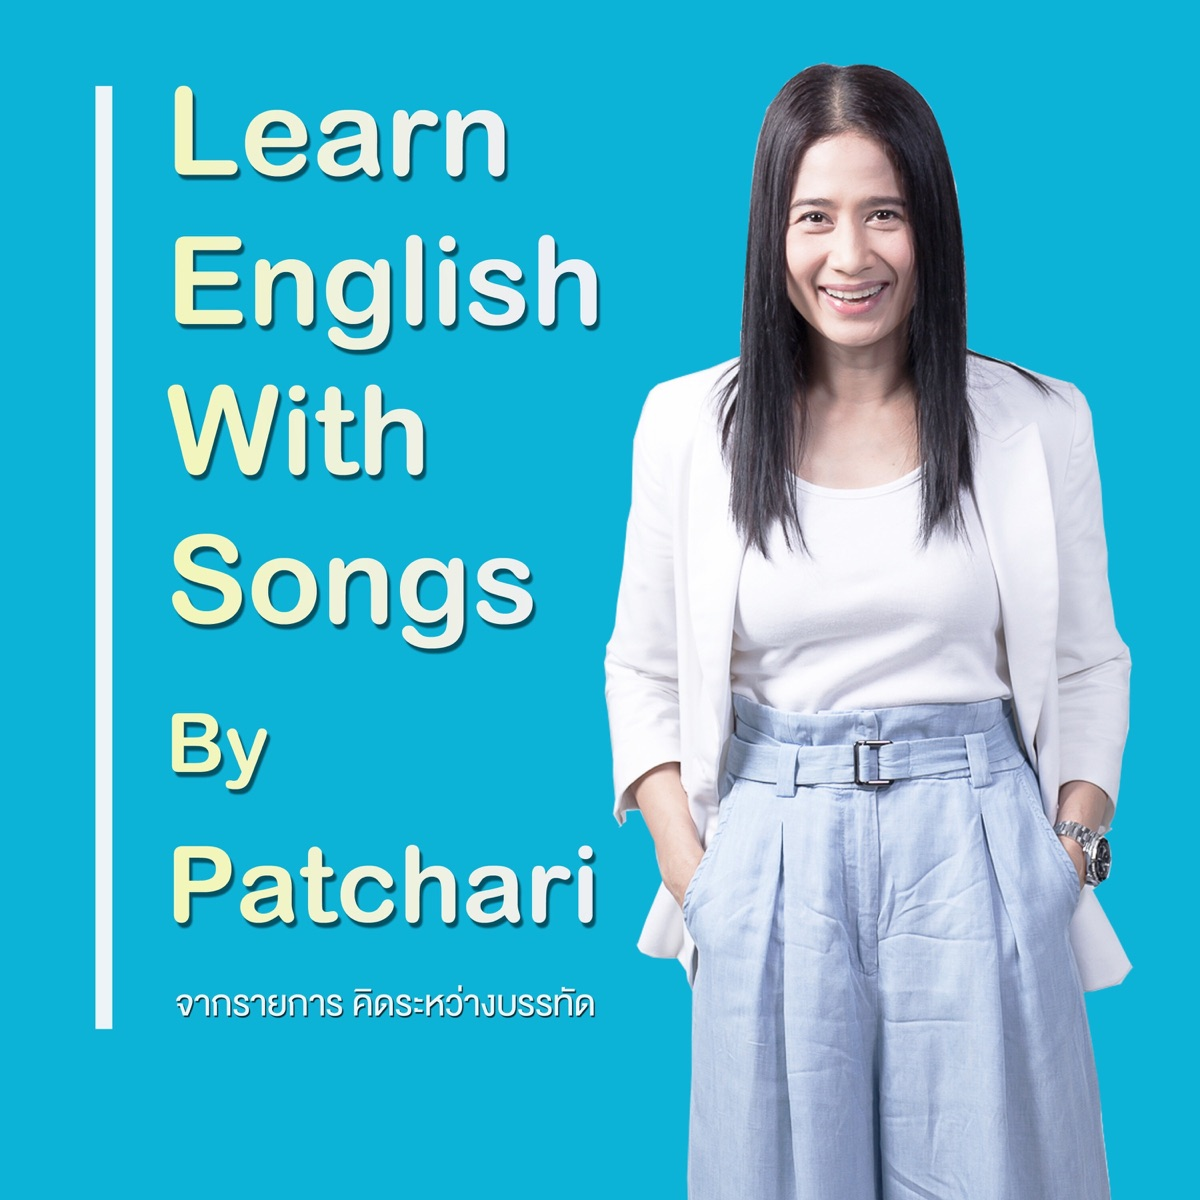 Learn English With Songs By Patchari